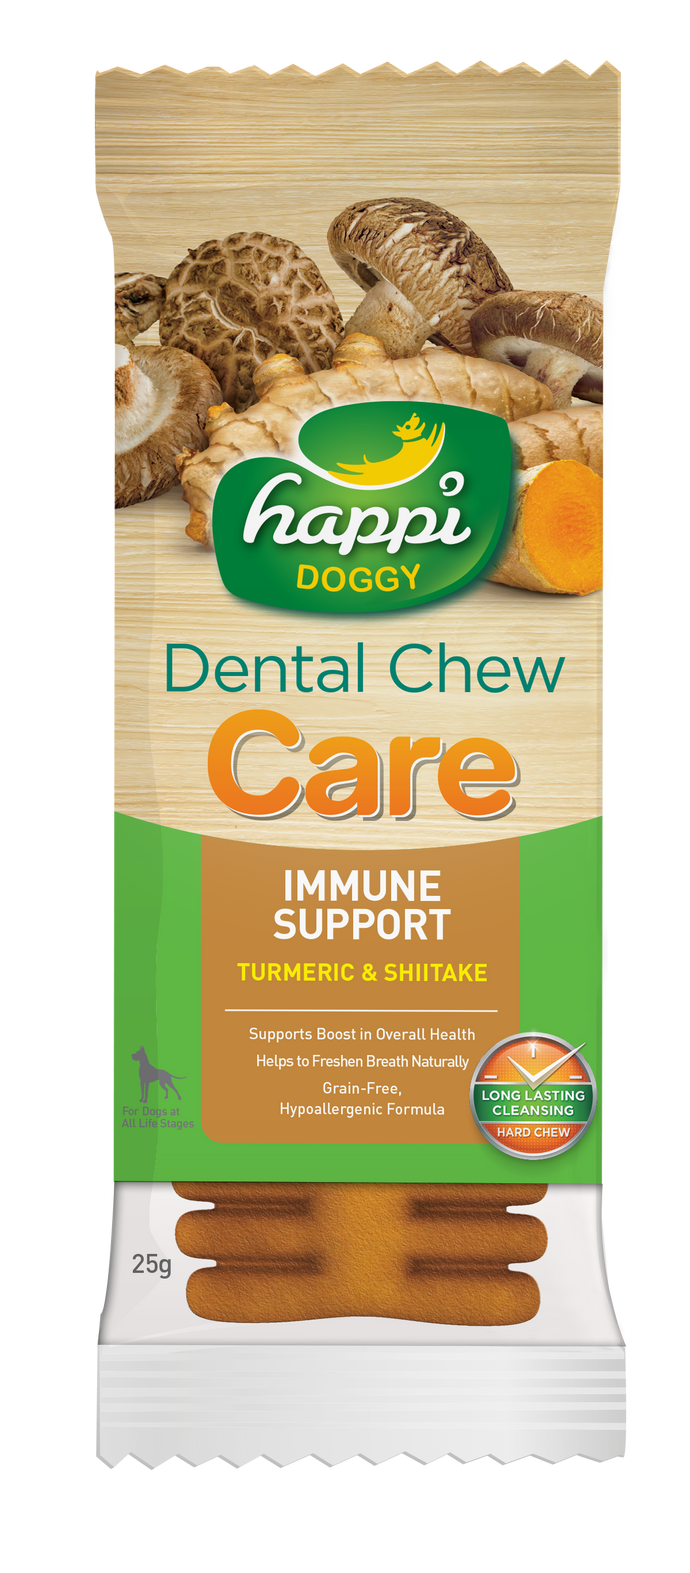 Happi Doggy Dental Chew Care (Immune Support) 4